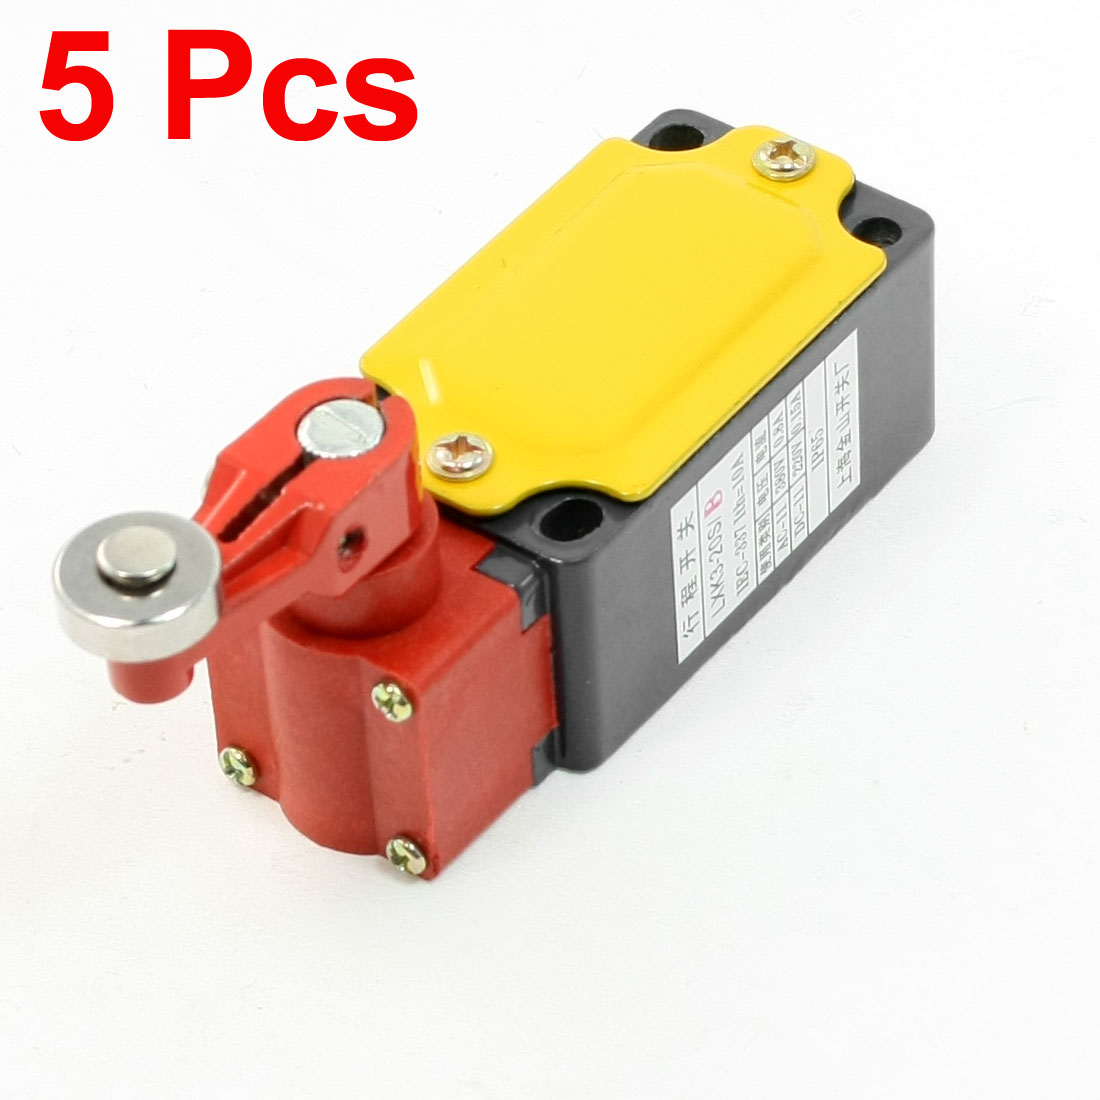 5 Pcs LXK3-20S/B Rotary Roller Lever Arm Ith 10A Enclosed Limit Switch